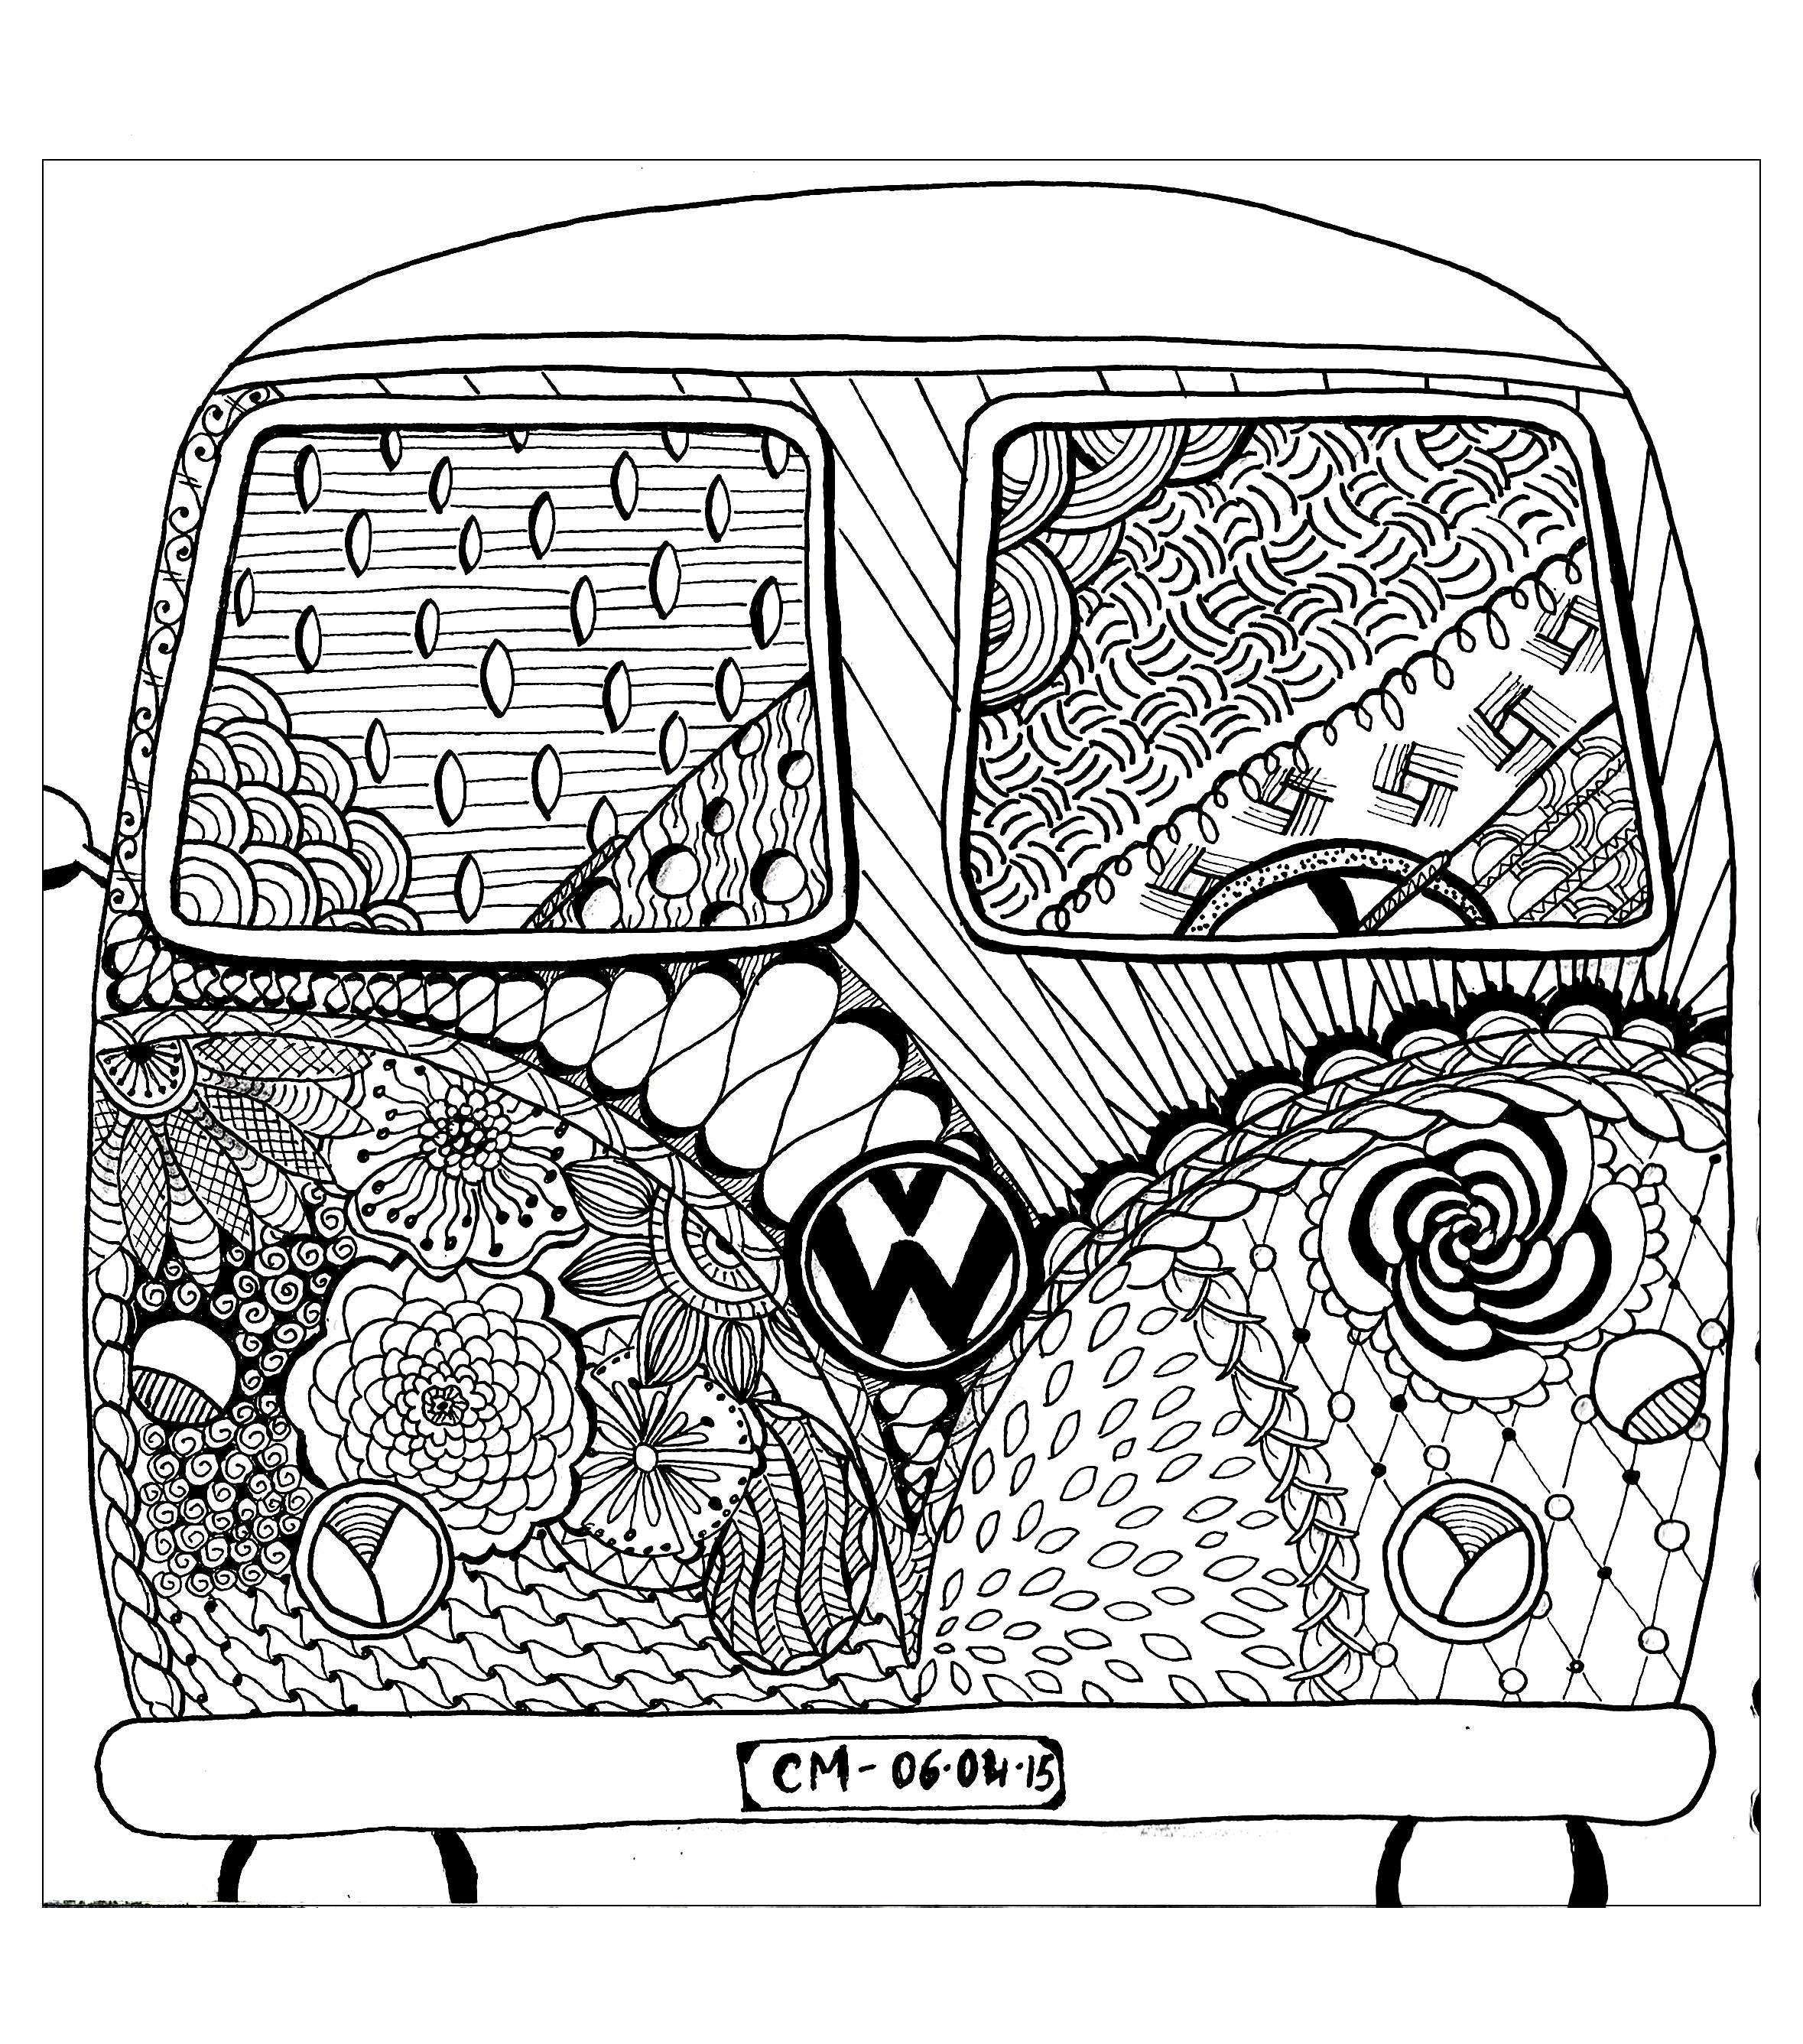 zentangle coloring pages free printable easy 20 zentangle patterns for beginners youtube free coloring pages printable zentangle free